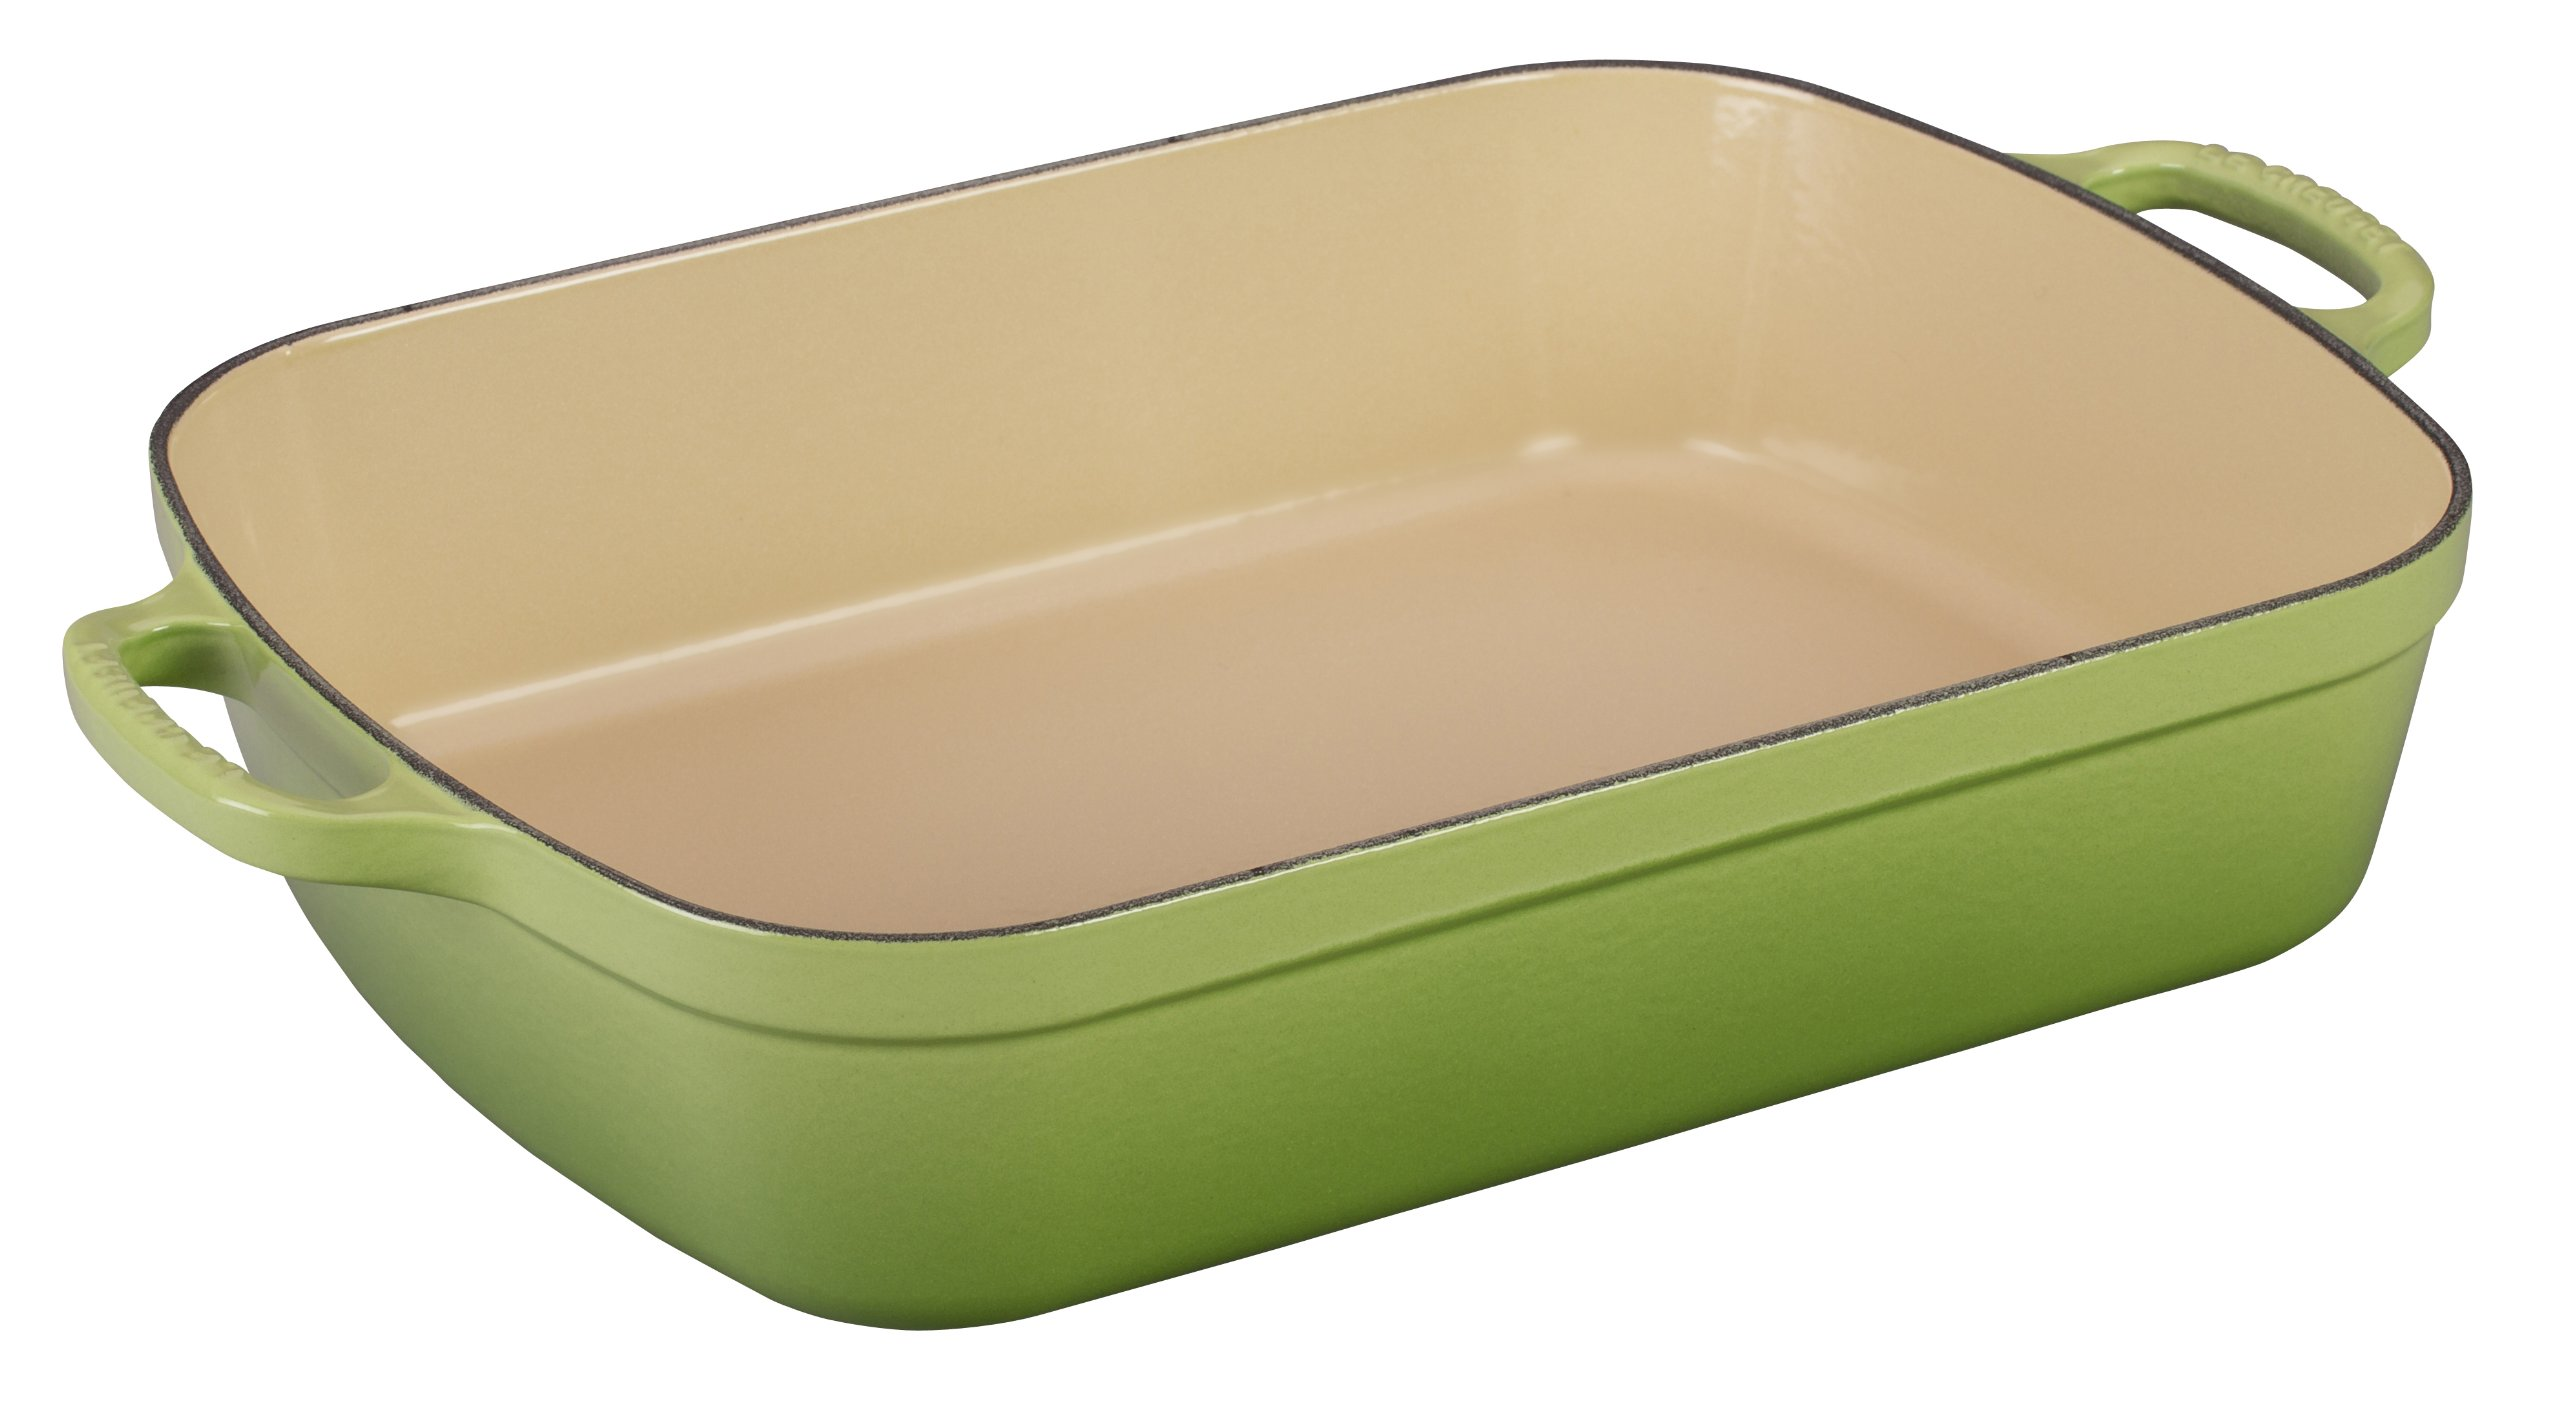 Le Creuset Signature Cast Iron Rectangular Roaster, 5.25-Quart, Palm product image